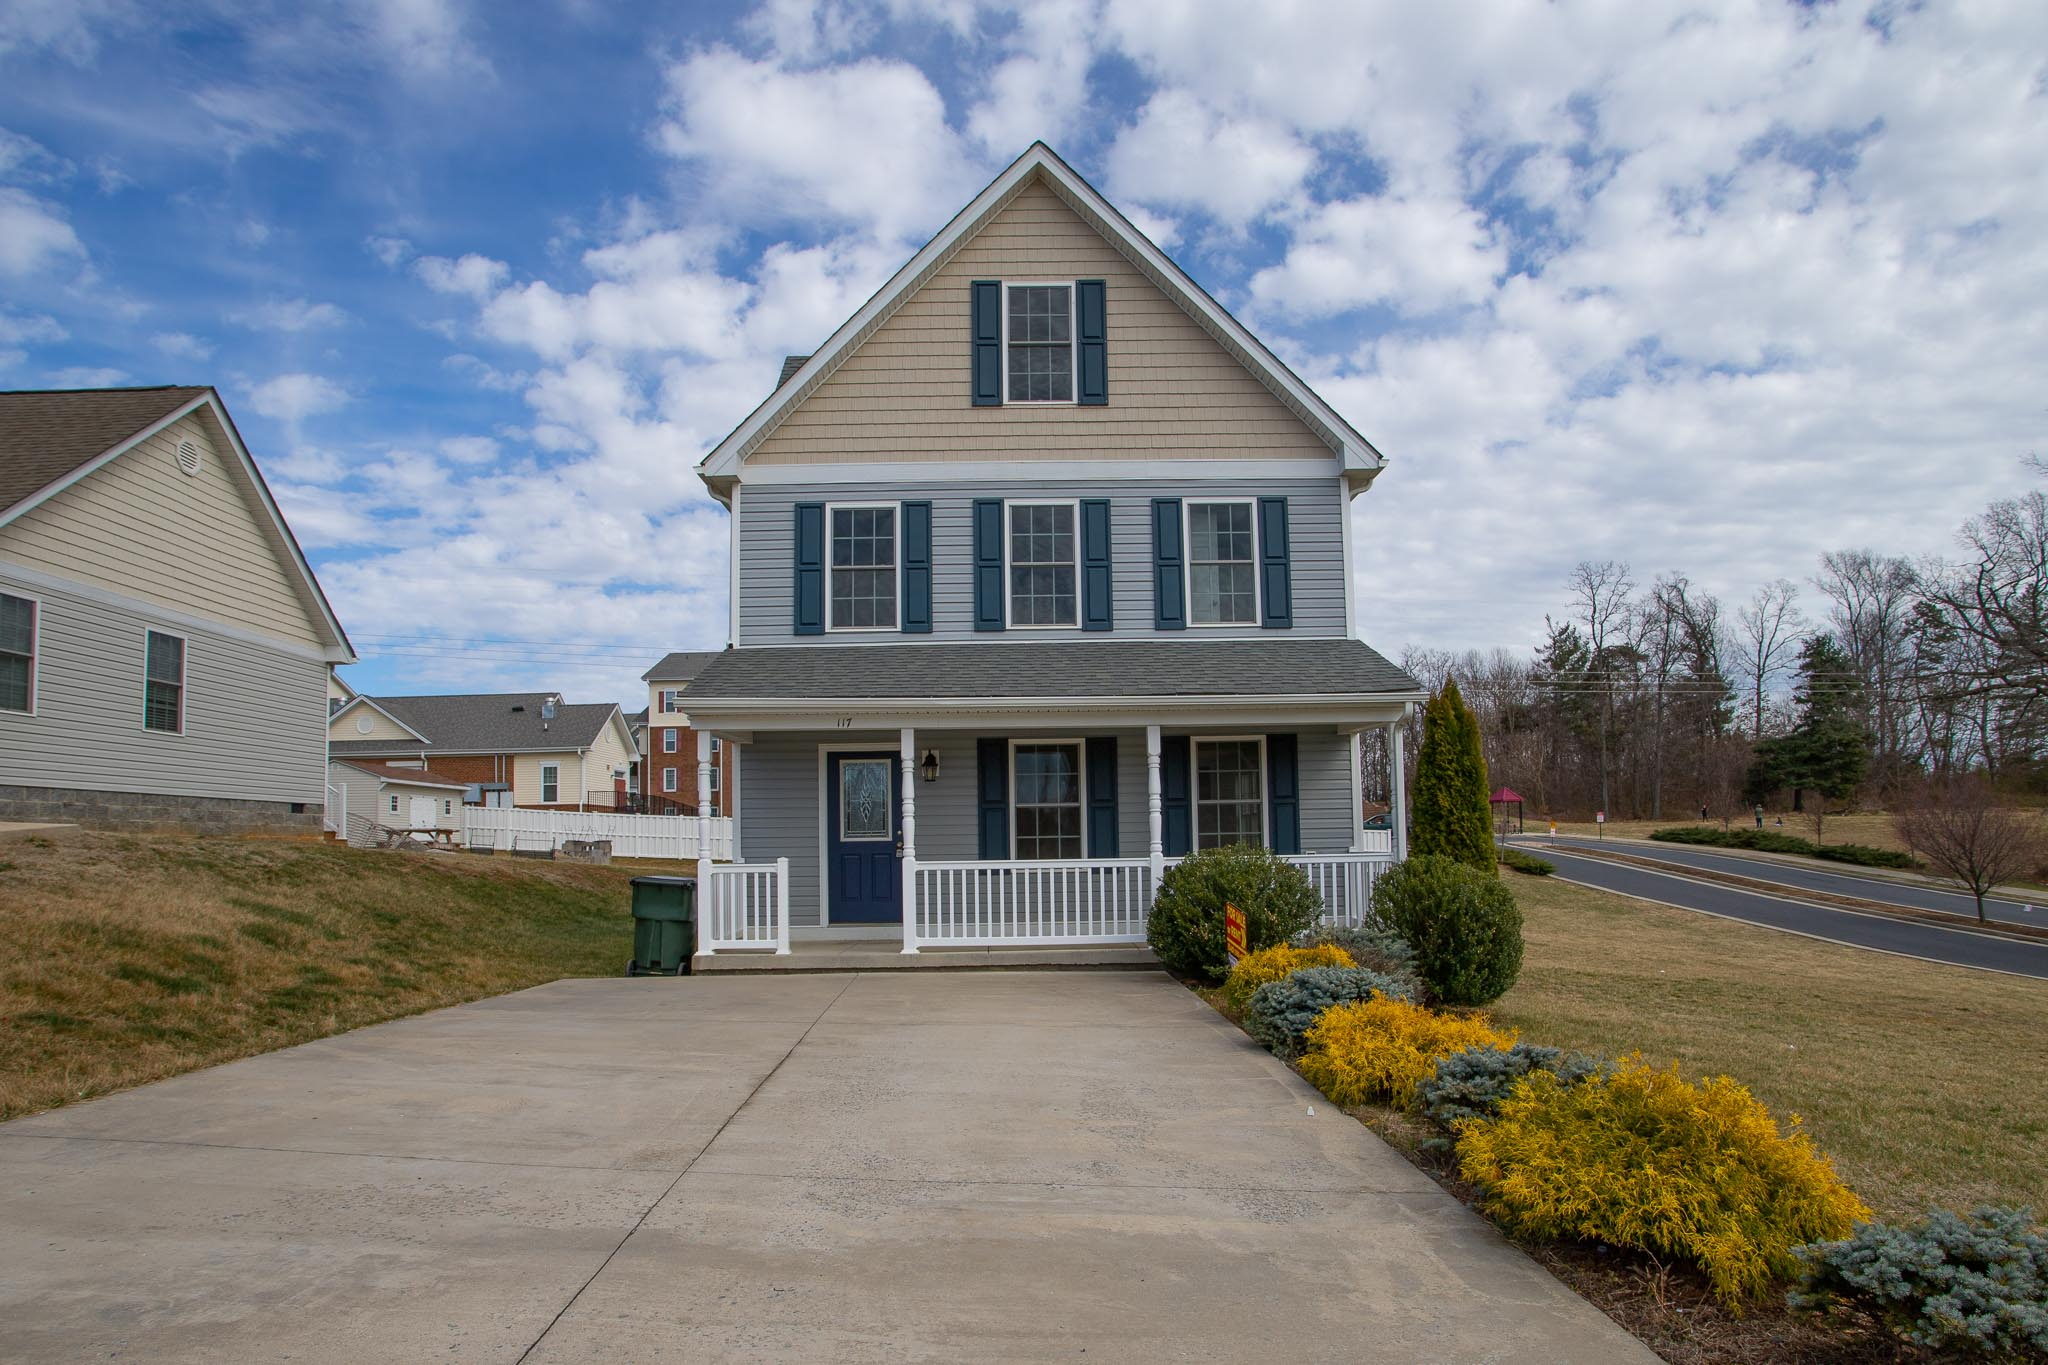 Home for Sale in Stuarts Draft, 117 Lofty Cir